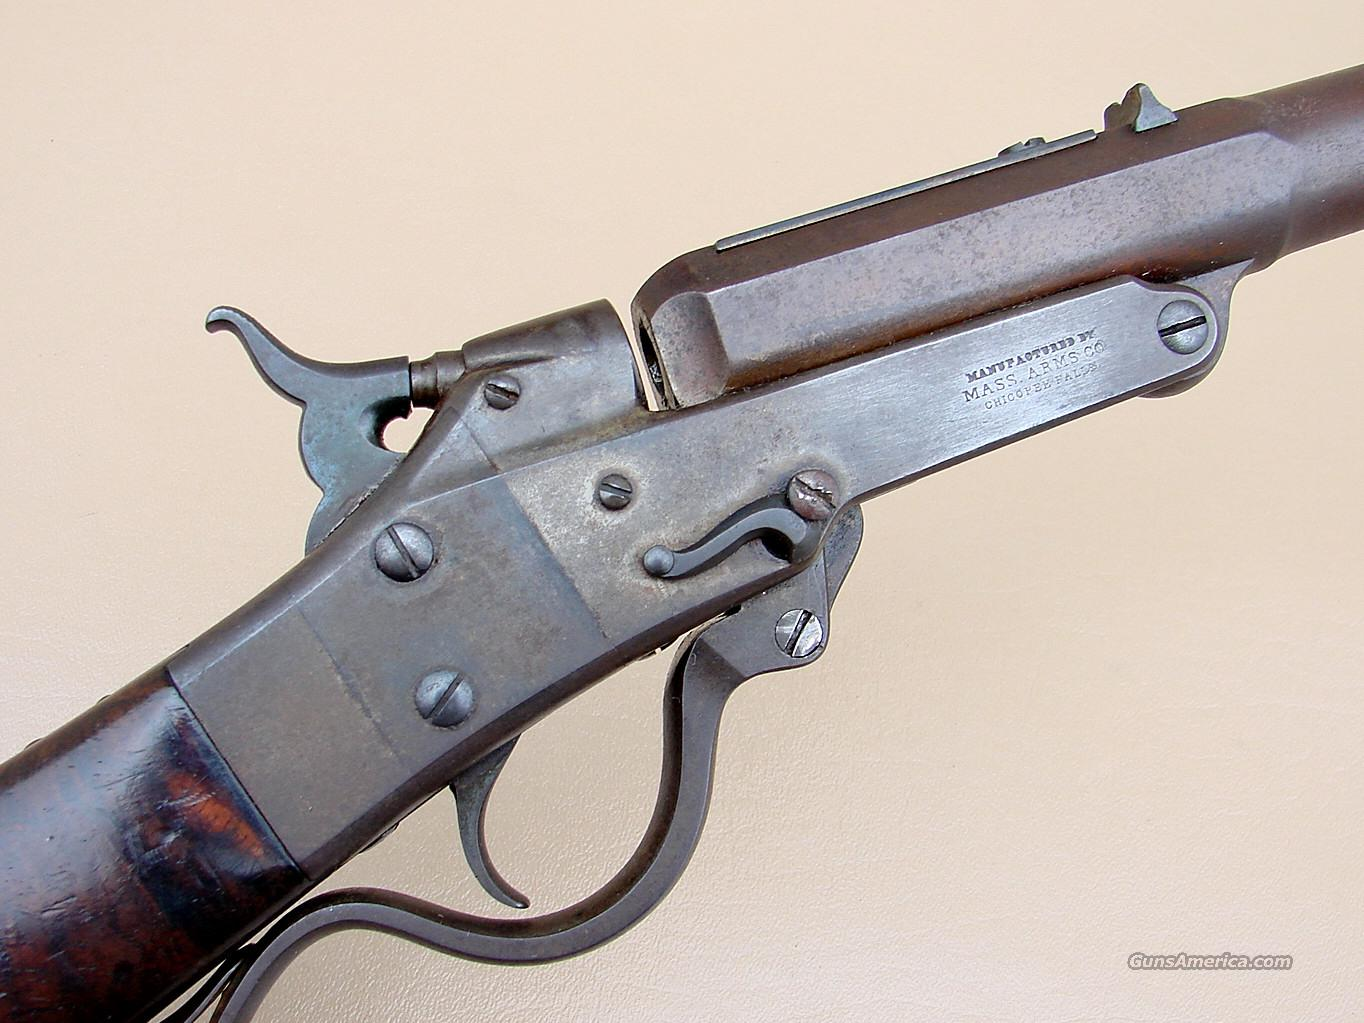 Maynard Model 1873 Rifle with Extra Fancy Walnut Stock in 35 Caliber.   Guns > Rifles > Antique (Pre-1899) Rifles - Ctg. Misc.